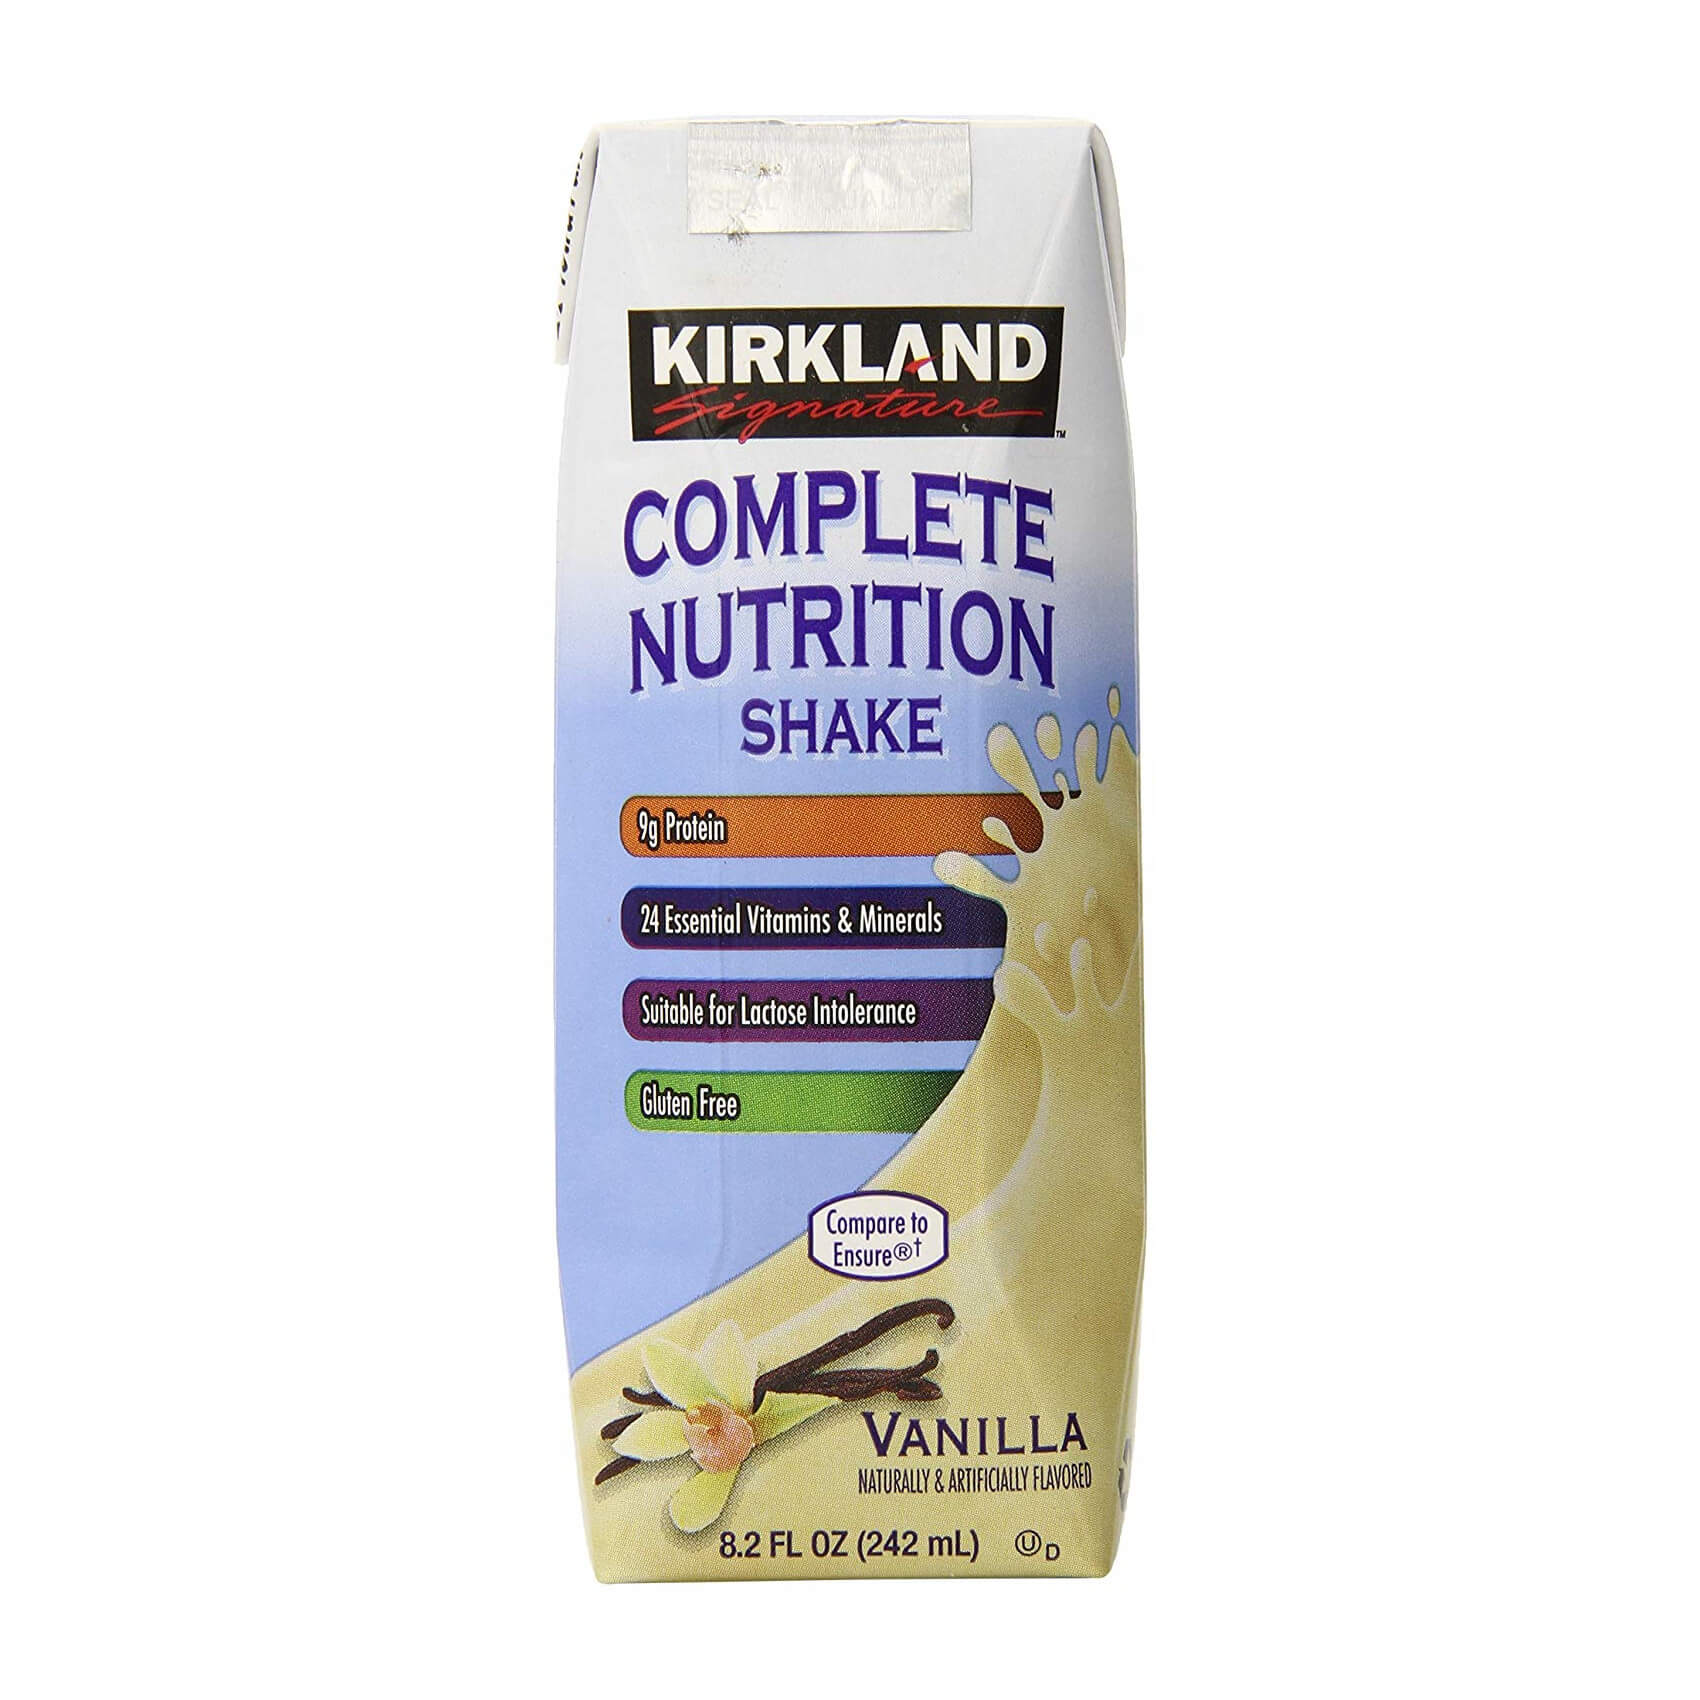 Kirkland Signature Complete Nutrition Shakes product image